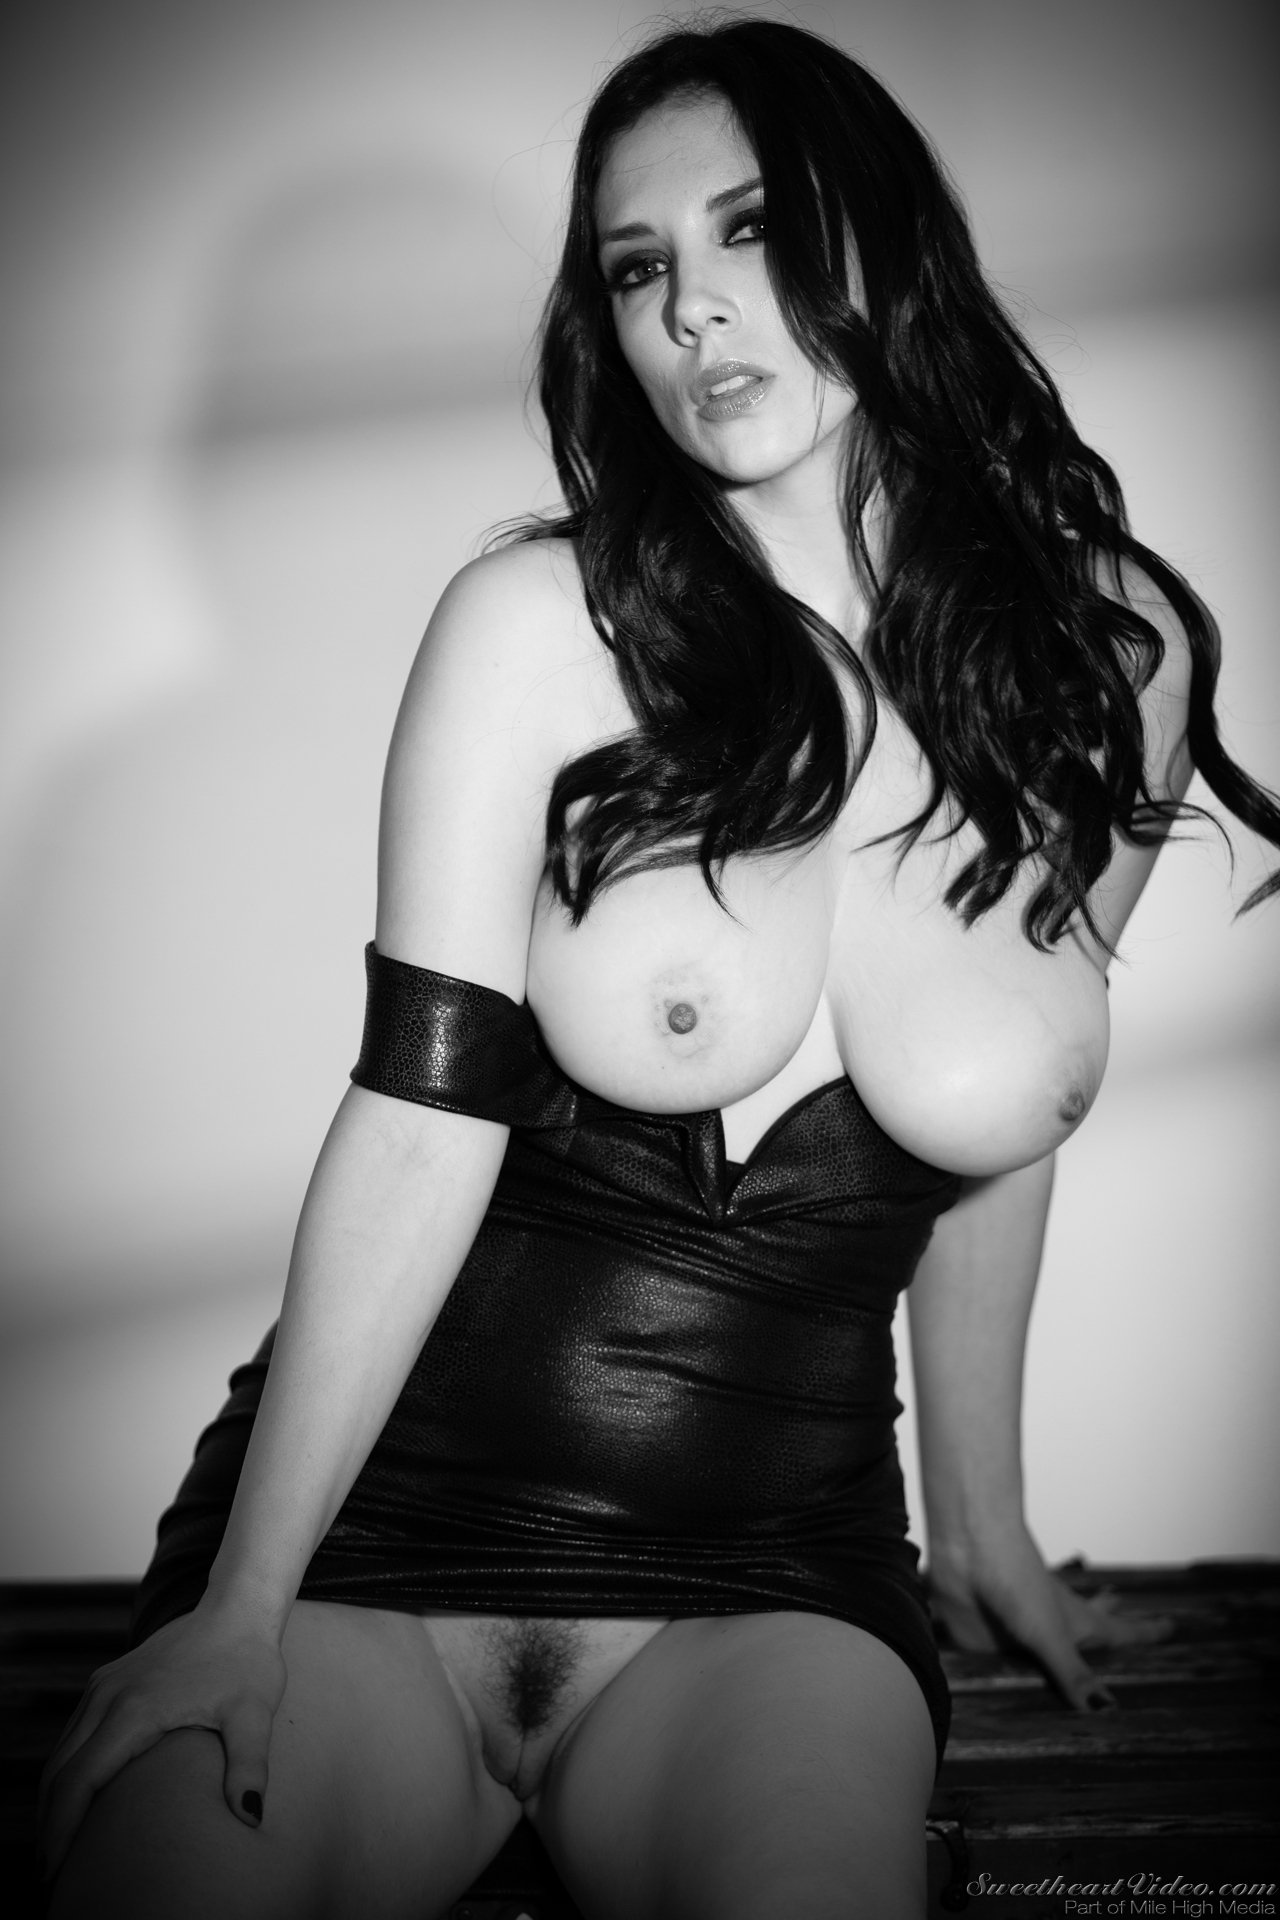 Dalrajas    reccomend mistress whipping male